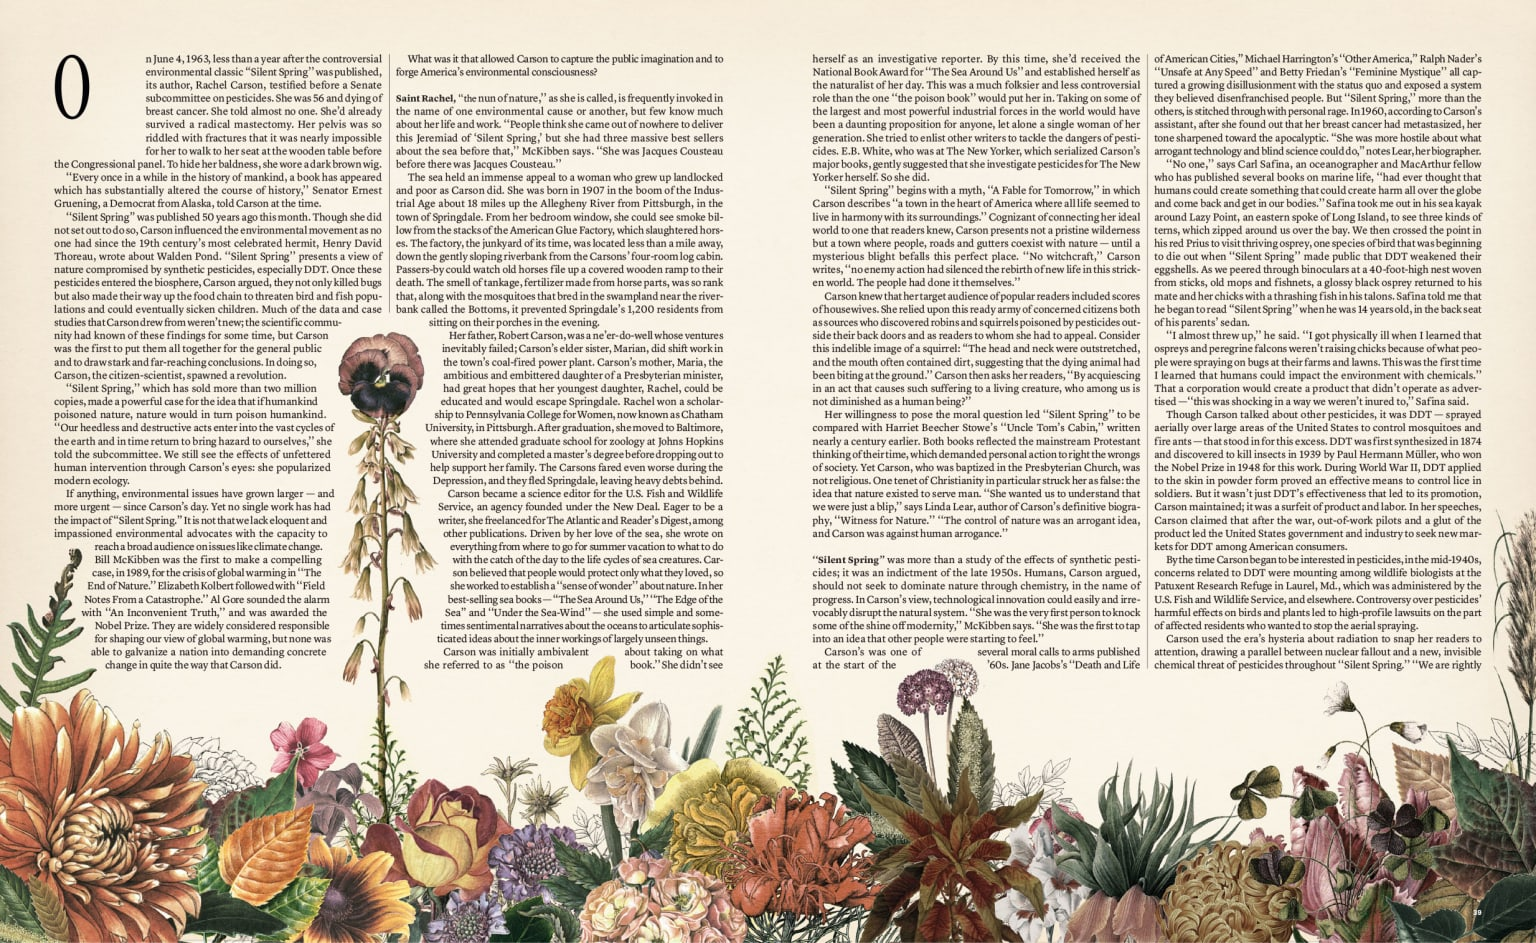 The NYTimes Magazine / Silent Spring Feature